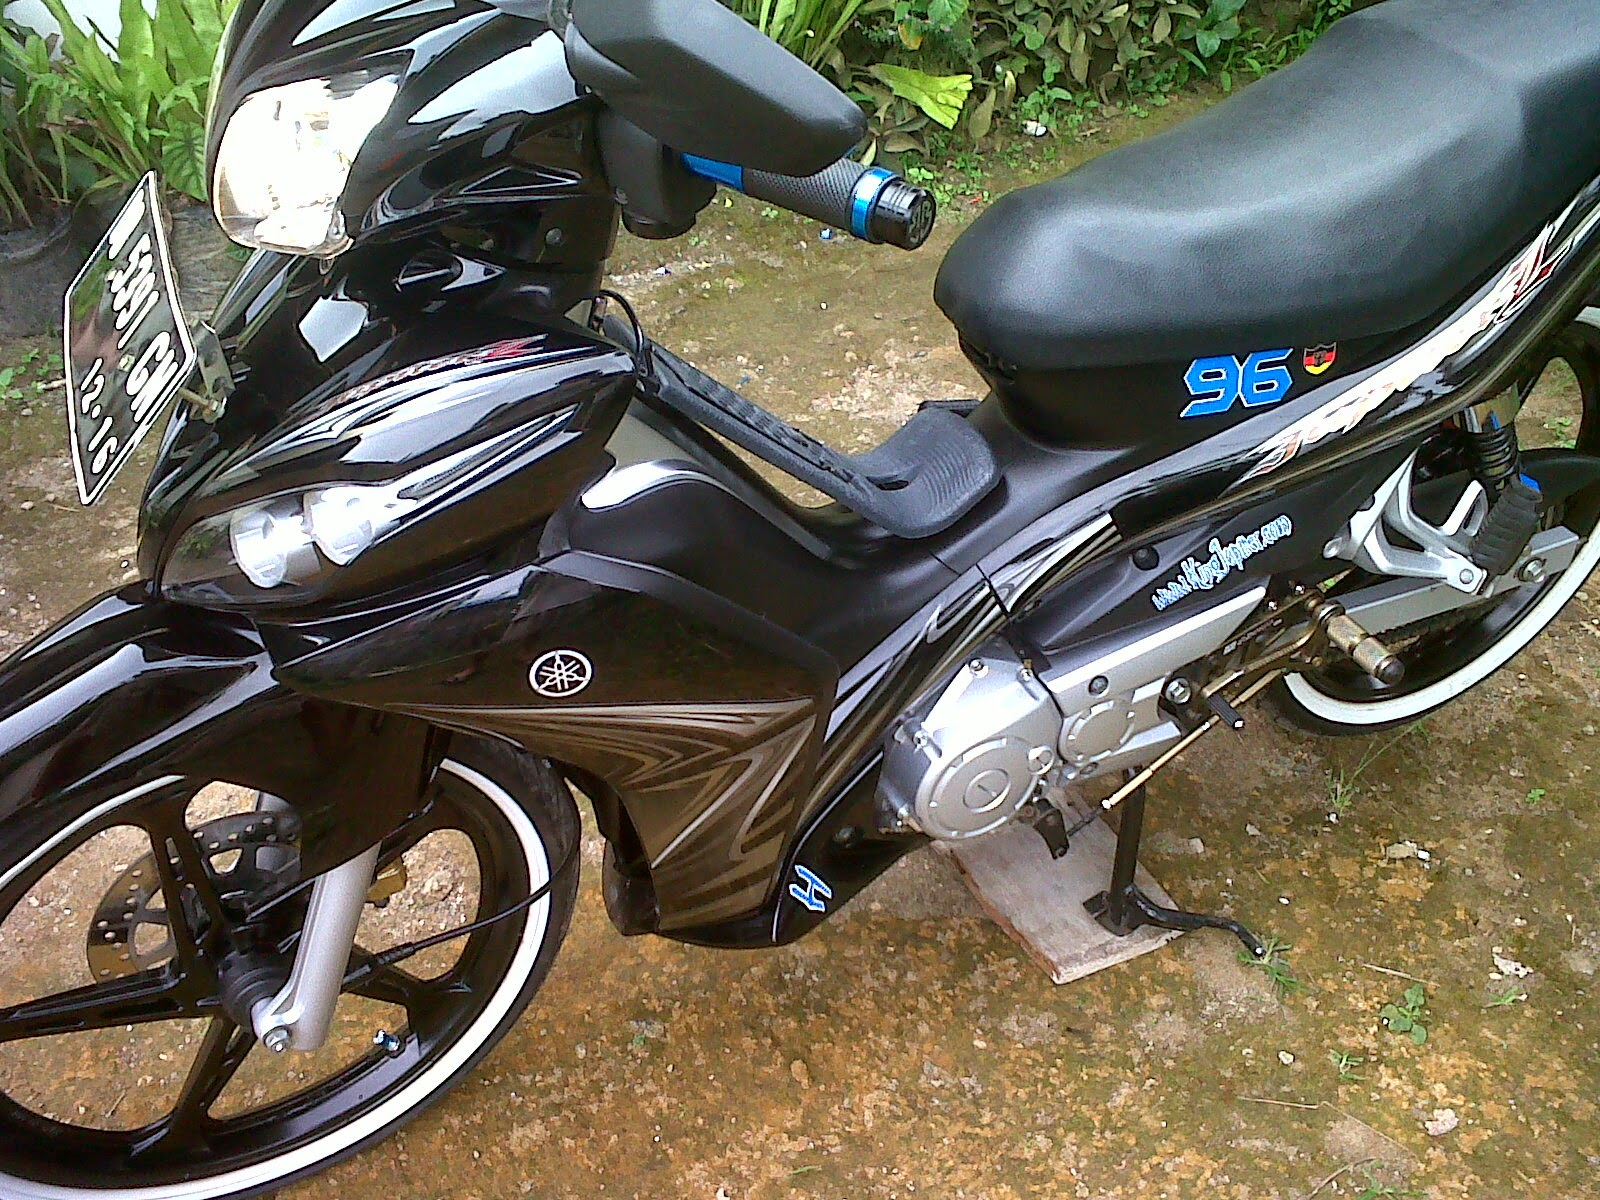 Modifikasi Yamaha New Jupiter Z1 Terbaru